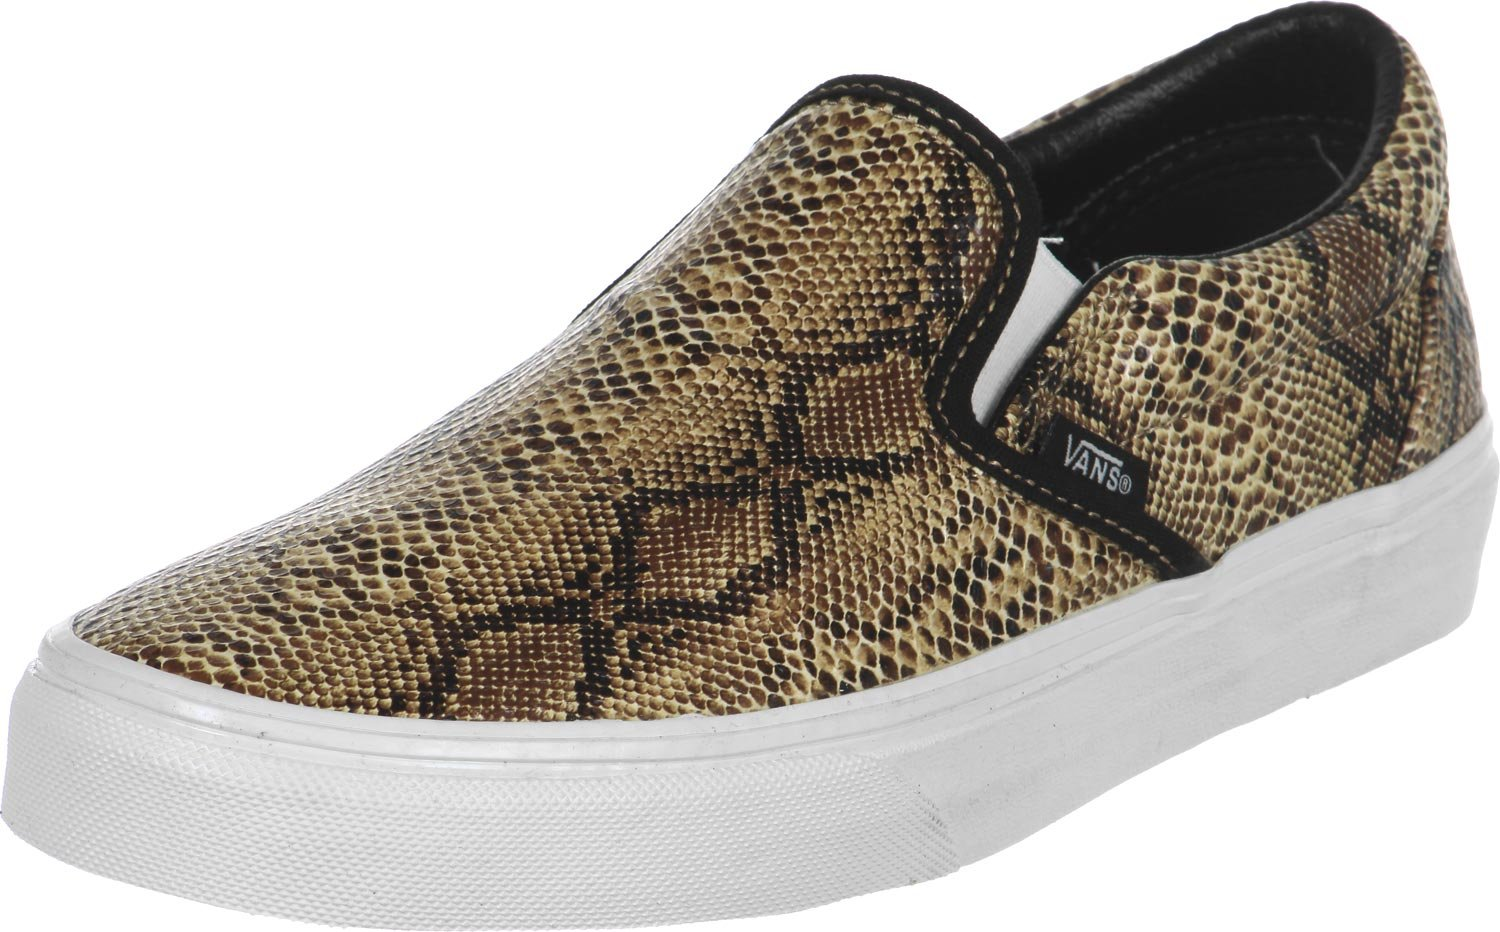 Vans Classic Slip on - Zapatillas Mujer 35.5 EU|Leather/Snake